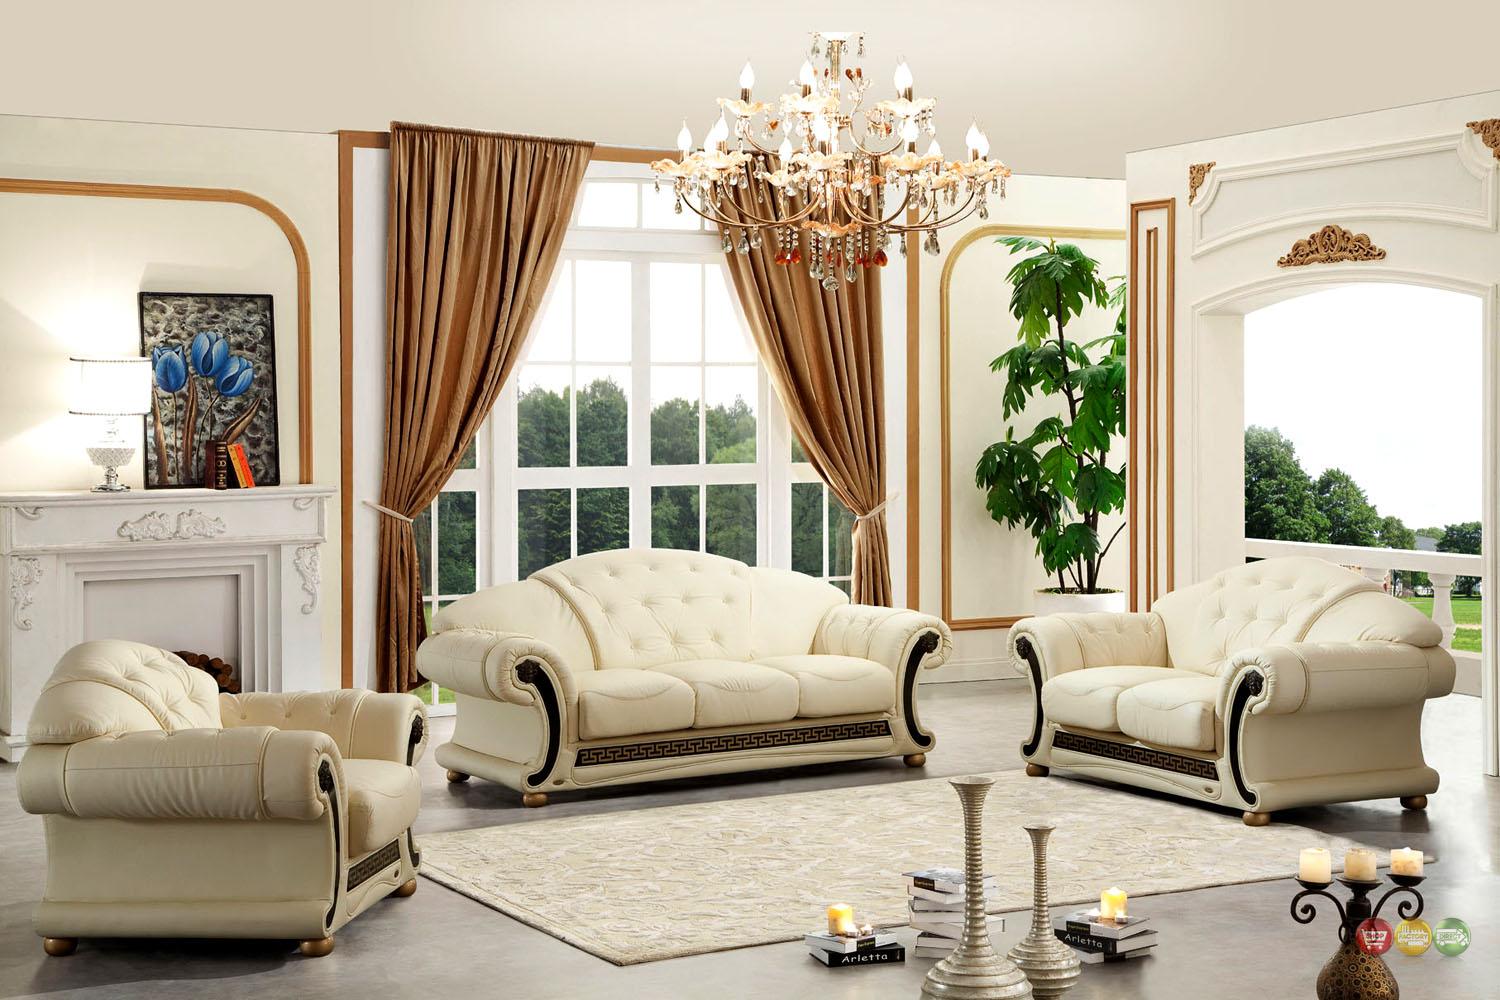 Cream leather sofa- an ultimate choice for a room